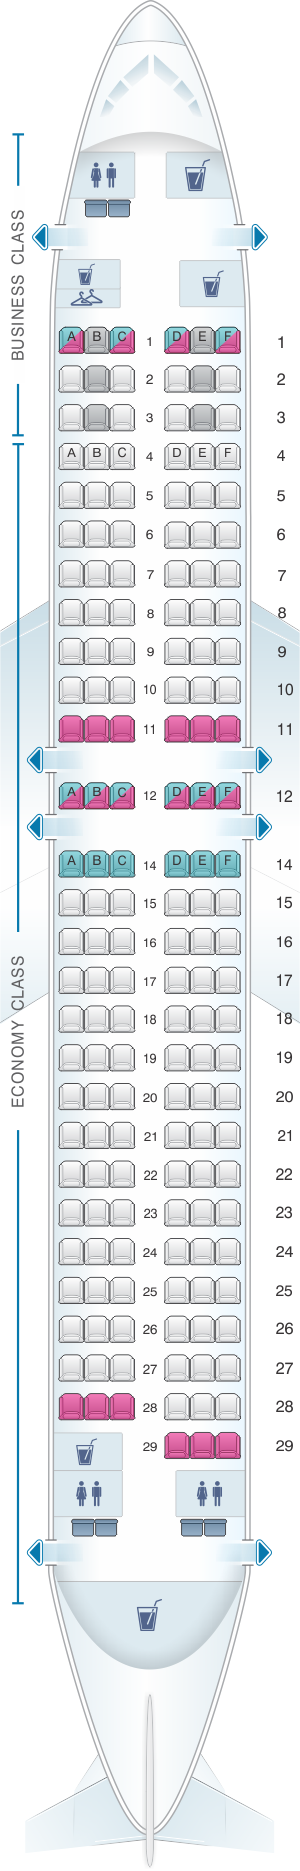 Seat map for Turkish Airlines Boeing B737 800